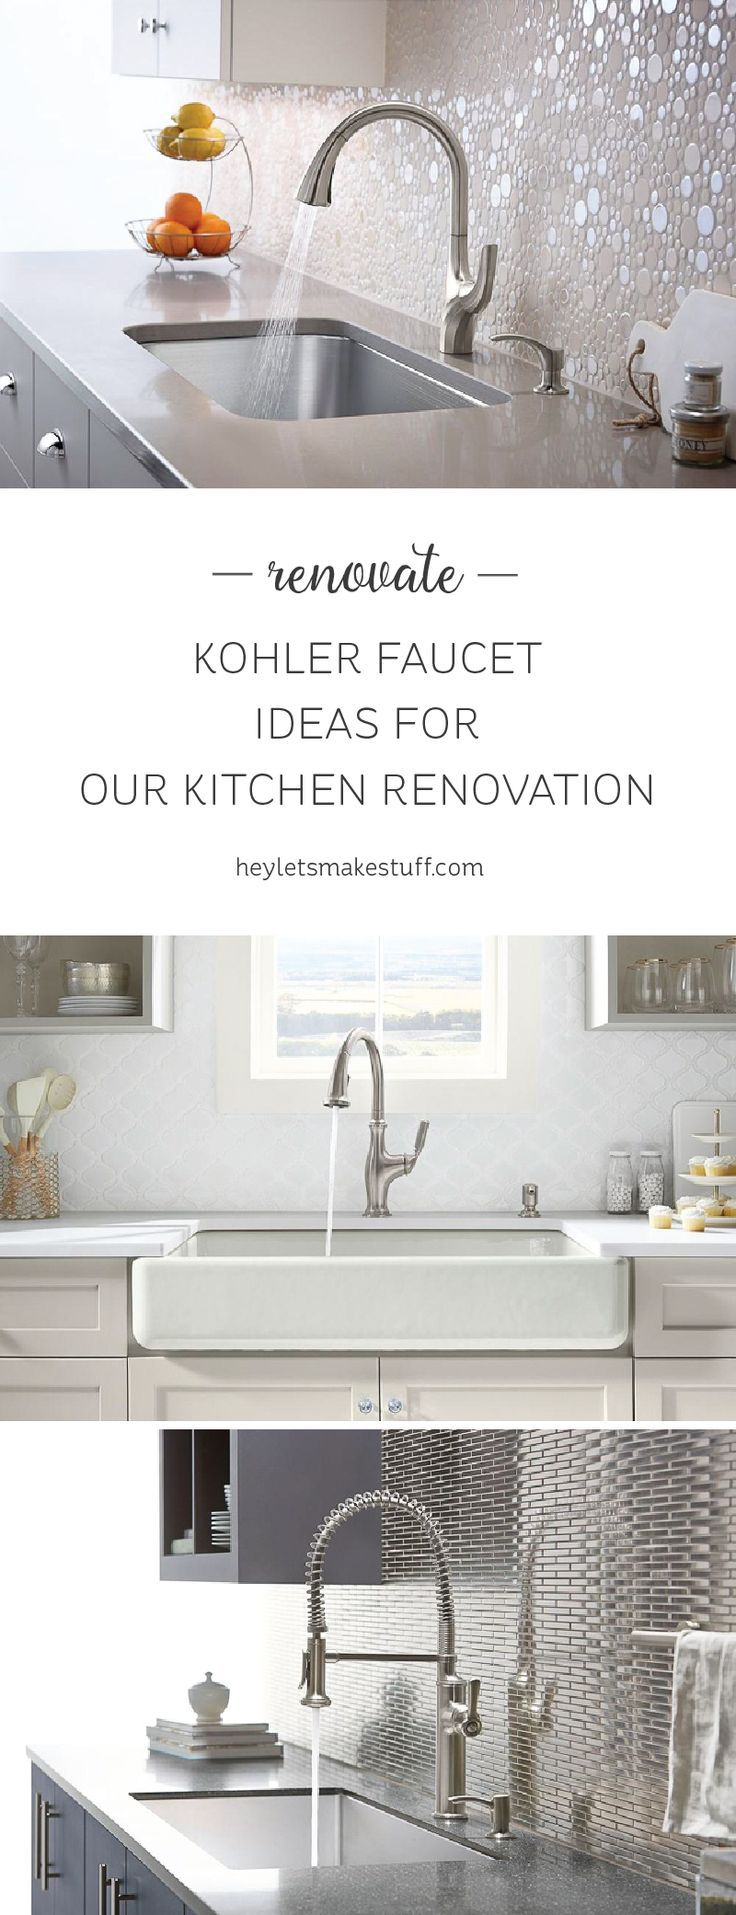 10 best Kitchens images on Pinterest | Kitchen ideas, Kitchen maid ...